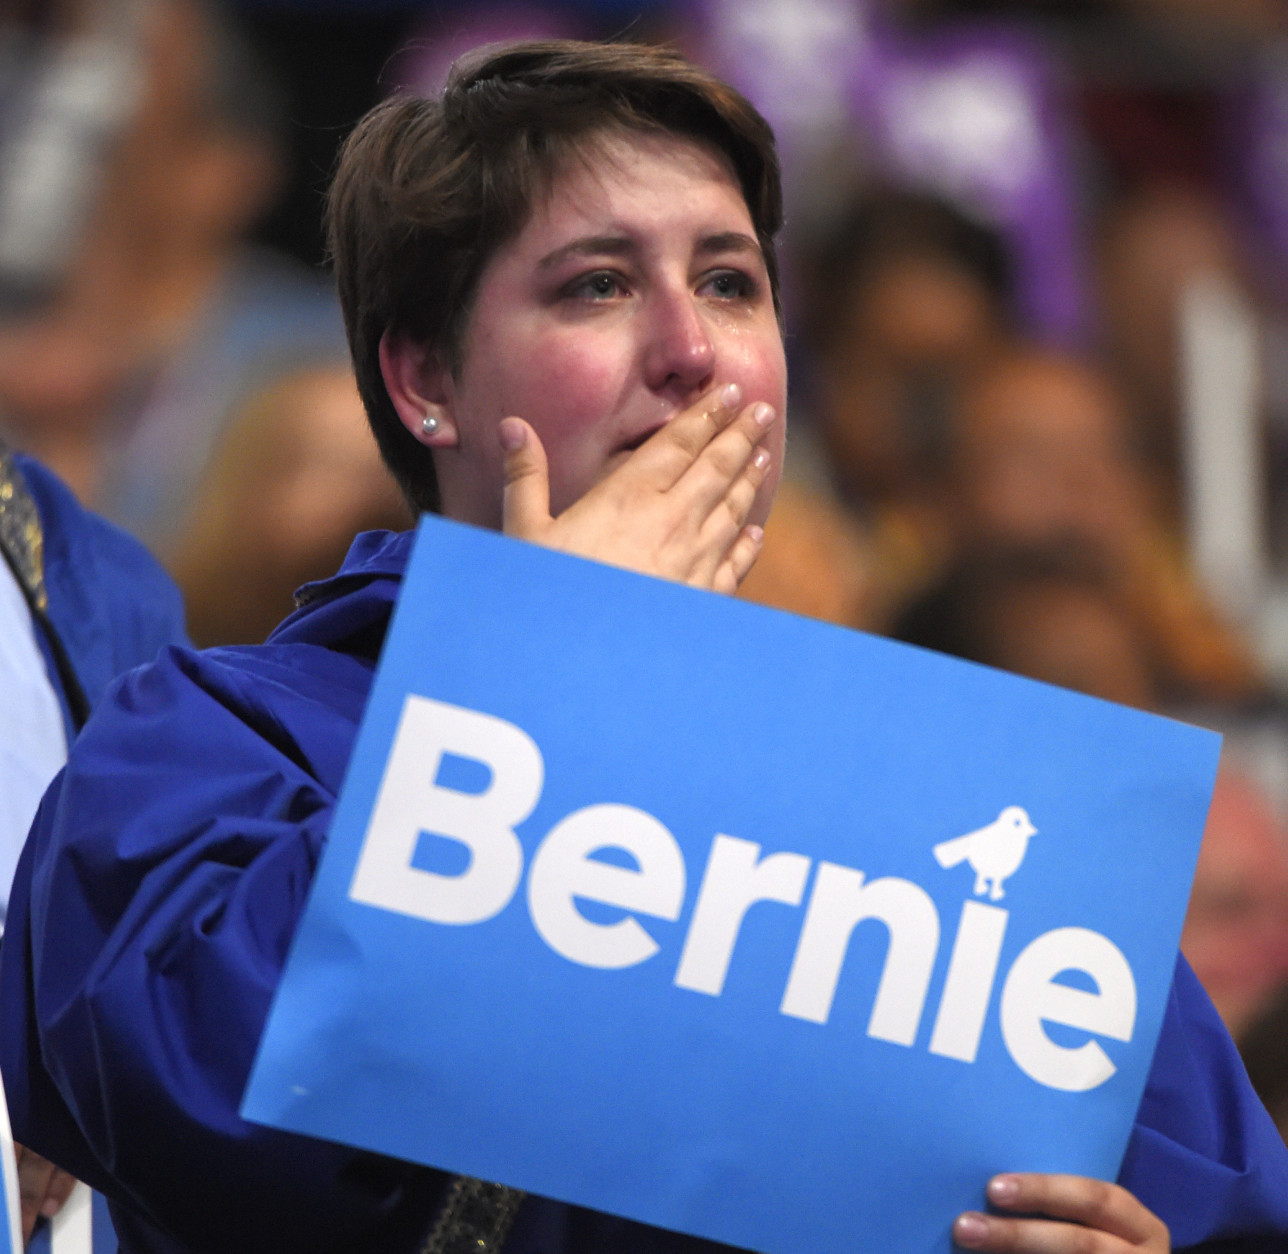 A supporter cries while listening to Former Democratic Presidential candidate, Sen. Bernie Sanders, I-Vt., speak during the first day of the Democratic National Convention in Philadelphia , Monday, July 25, 2016. (AP Photo/=2015338Name=)